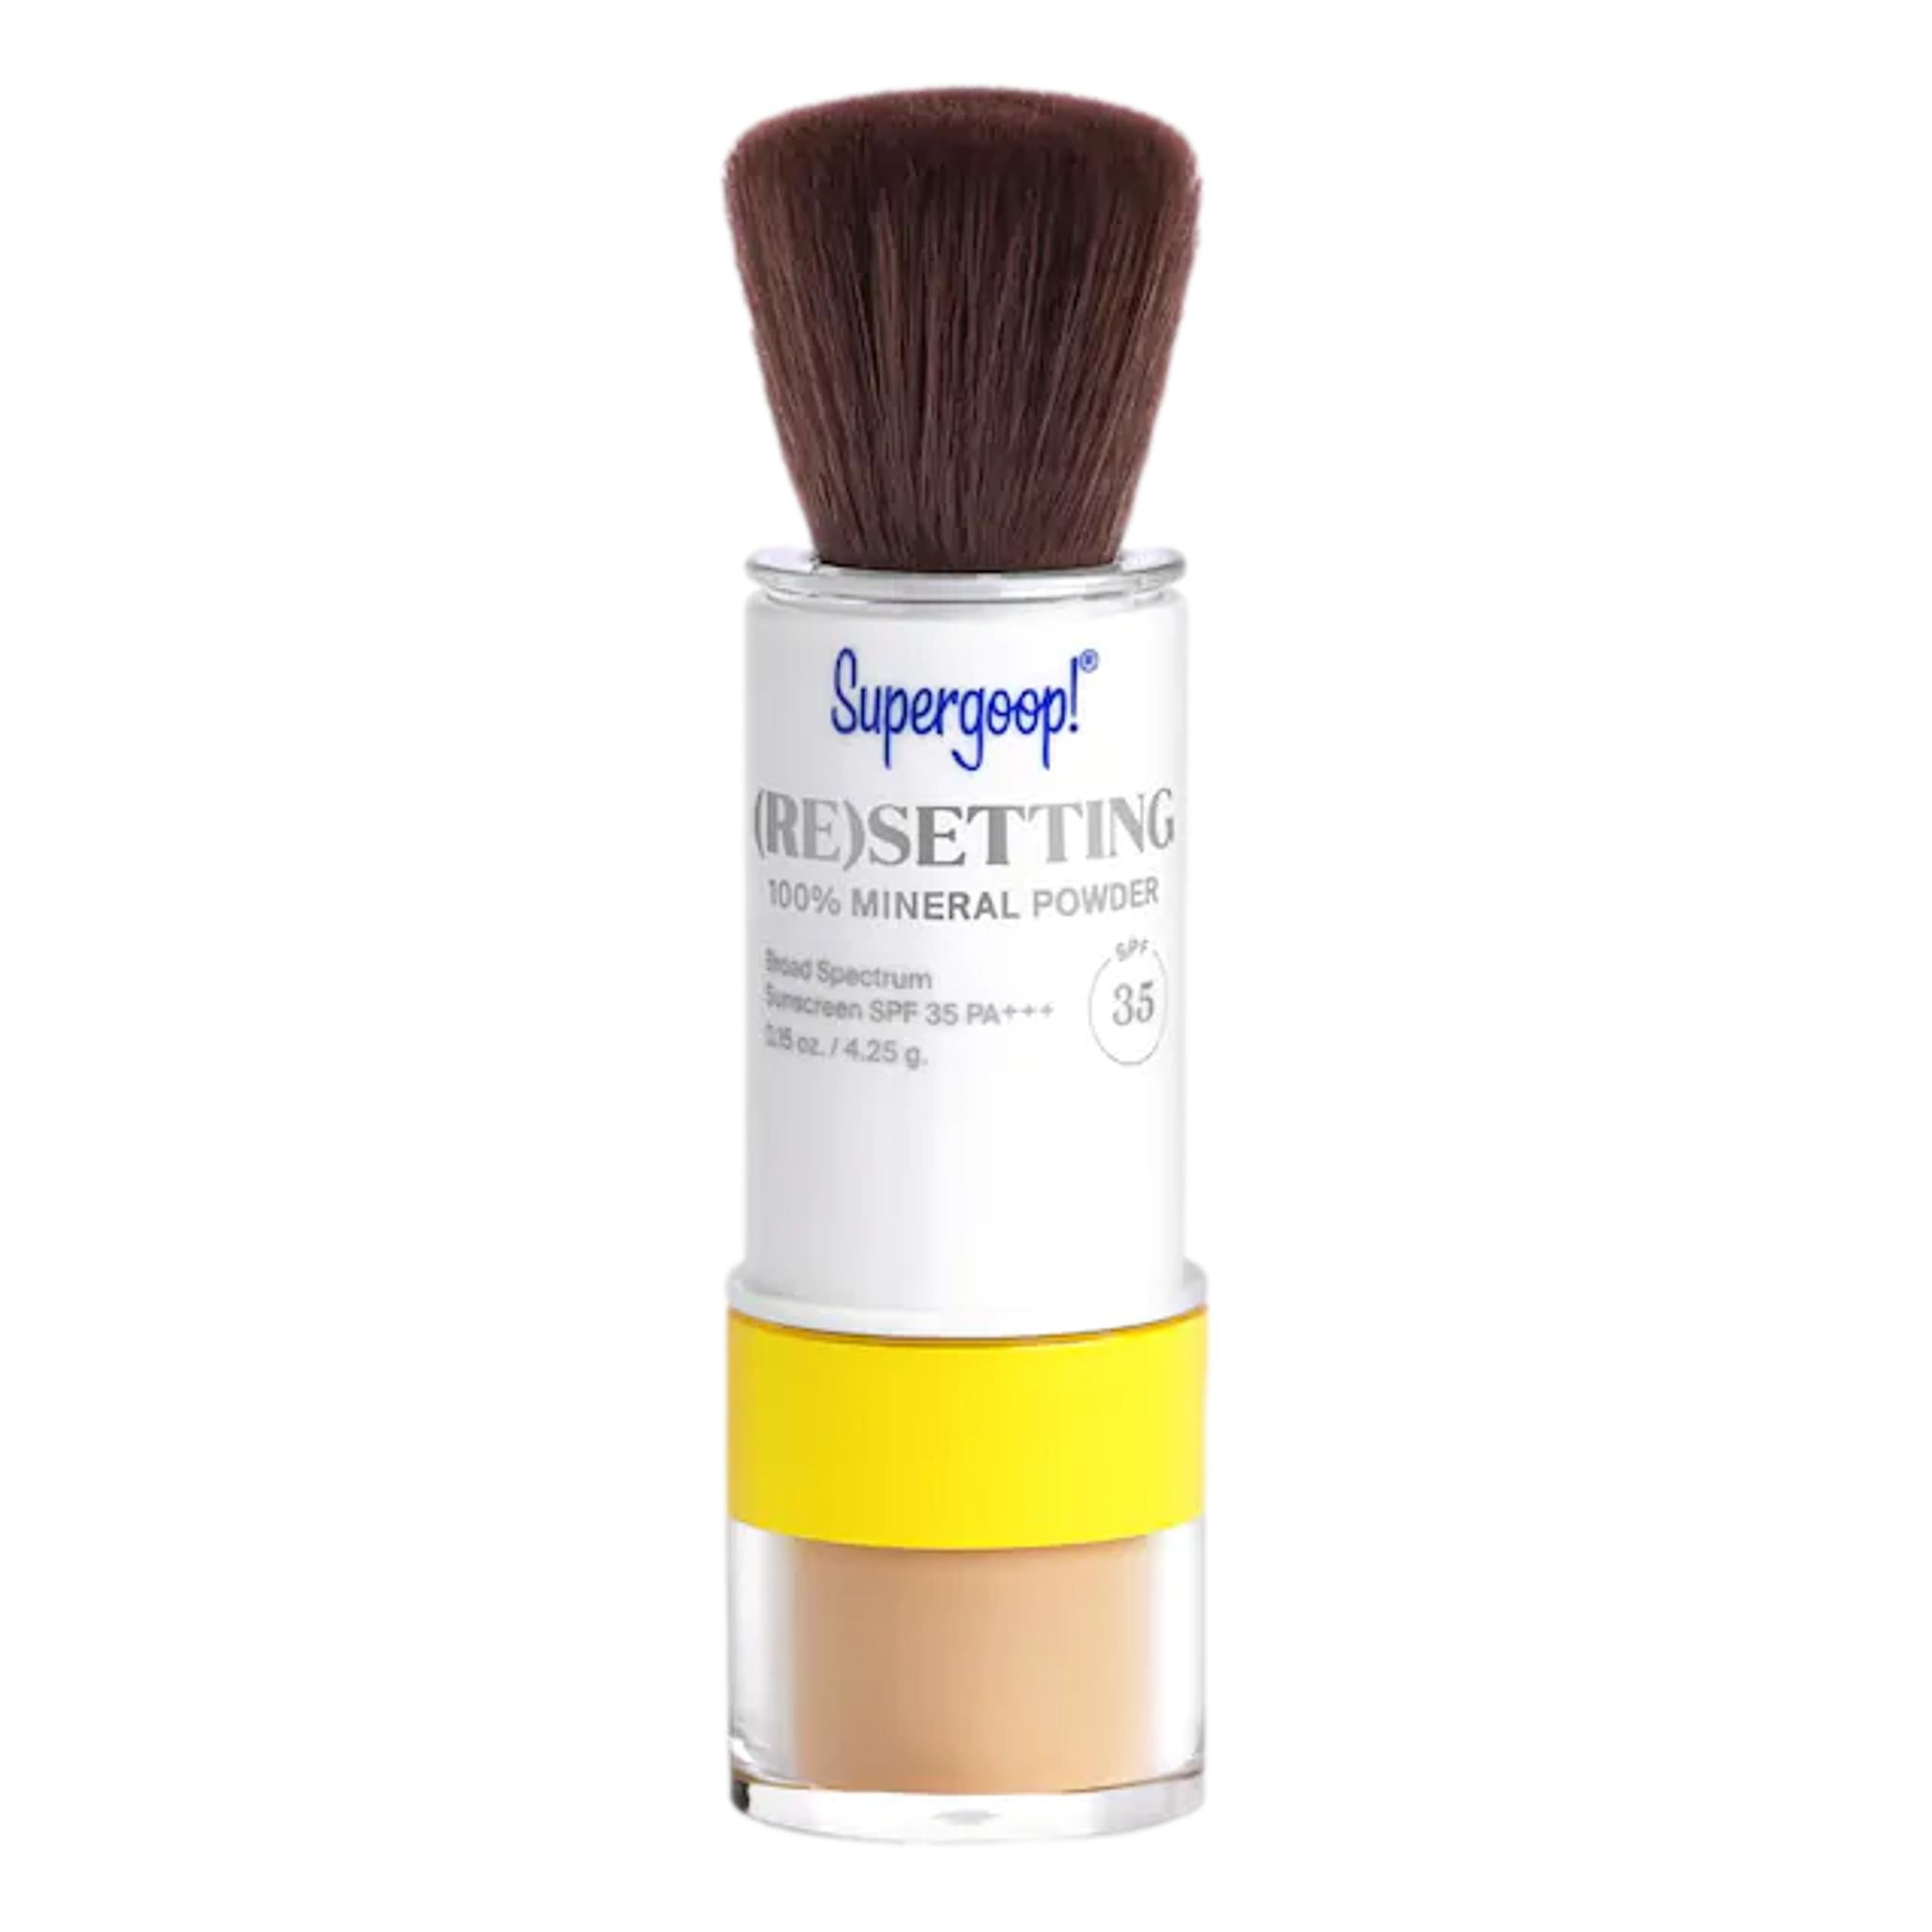 Supergoop! (Re)setting 100% Mineral Powder SPF 35 PA+++ 4.25g | 0.15